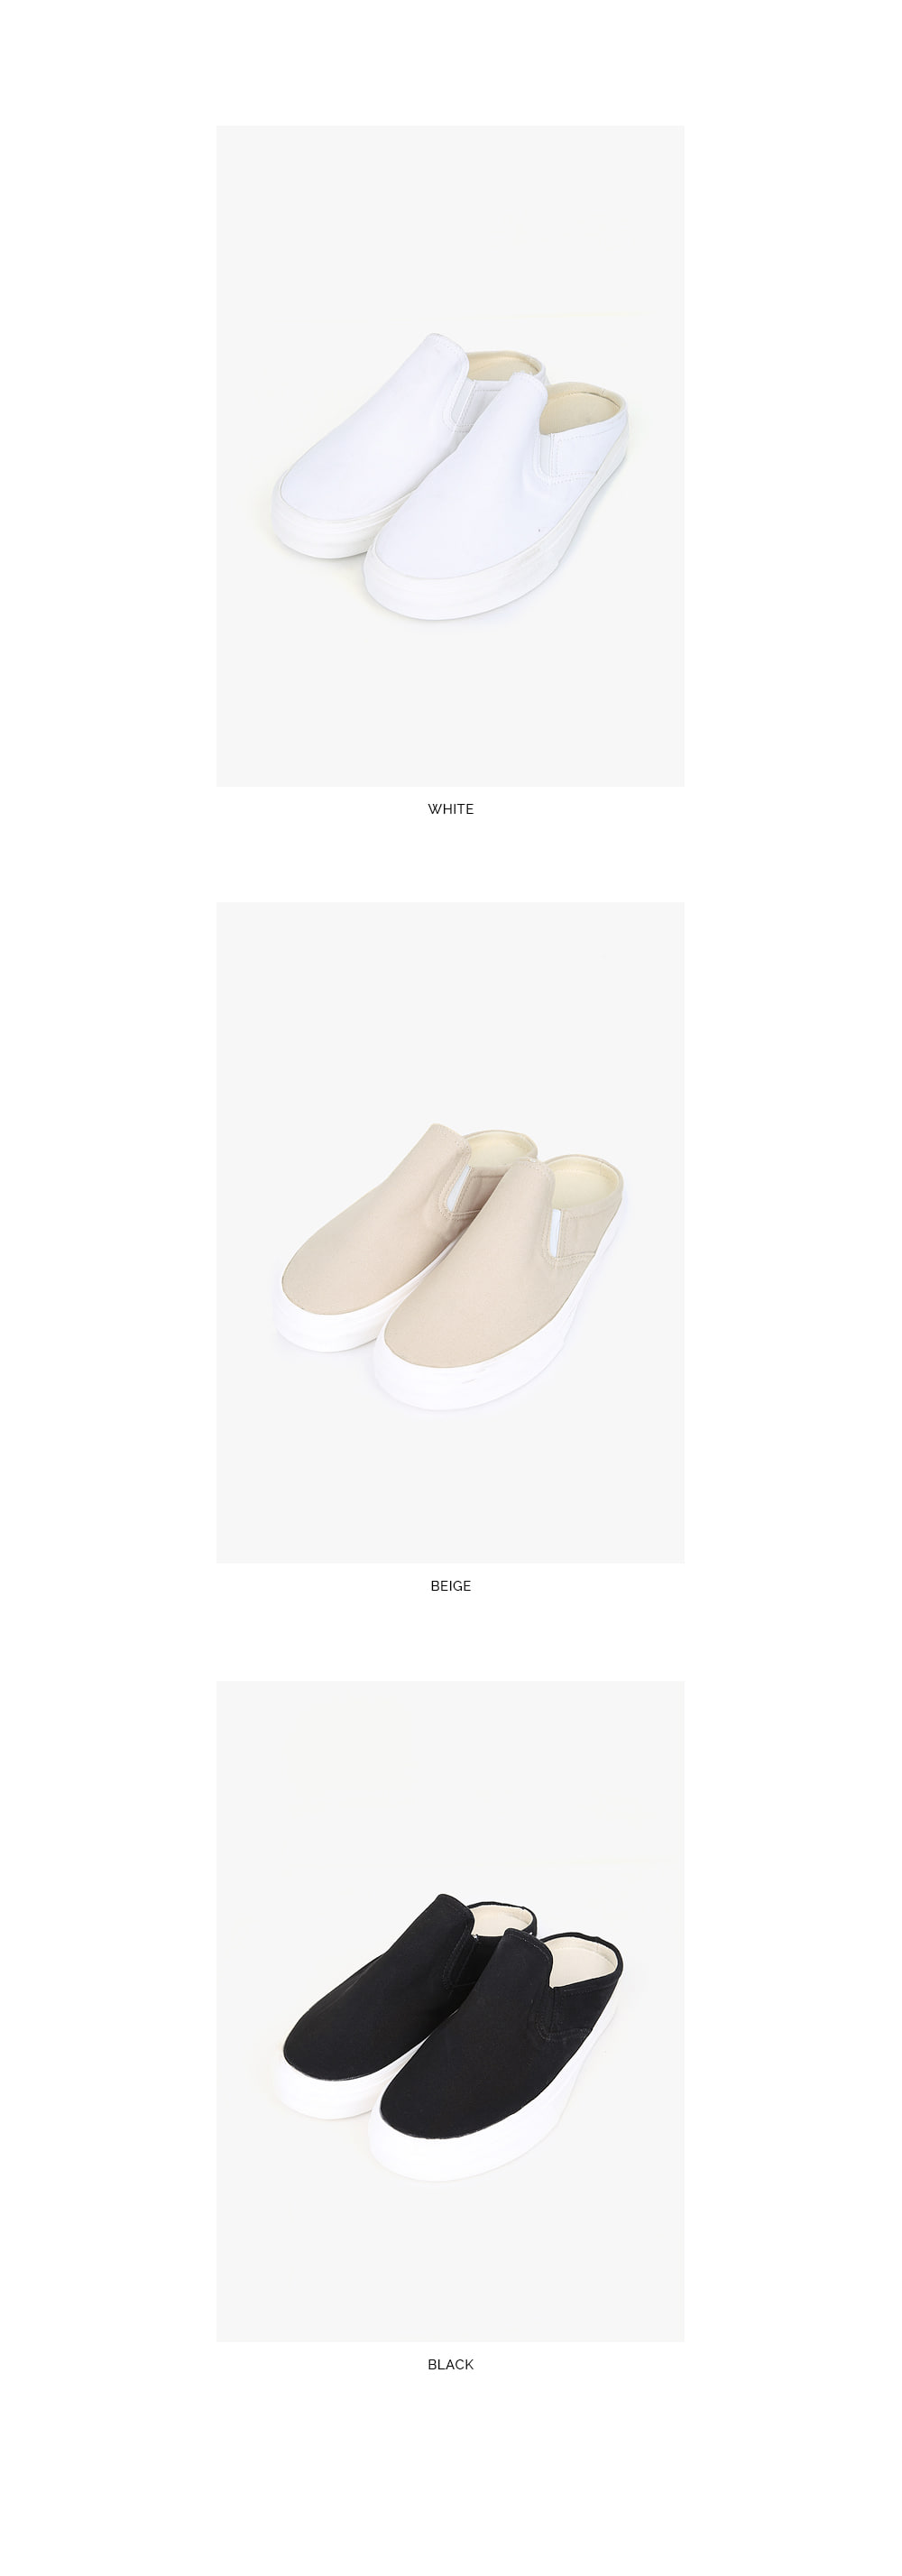 casual slip-on shape slipper (s, m, l)